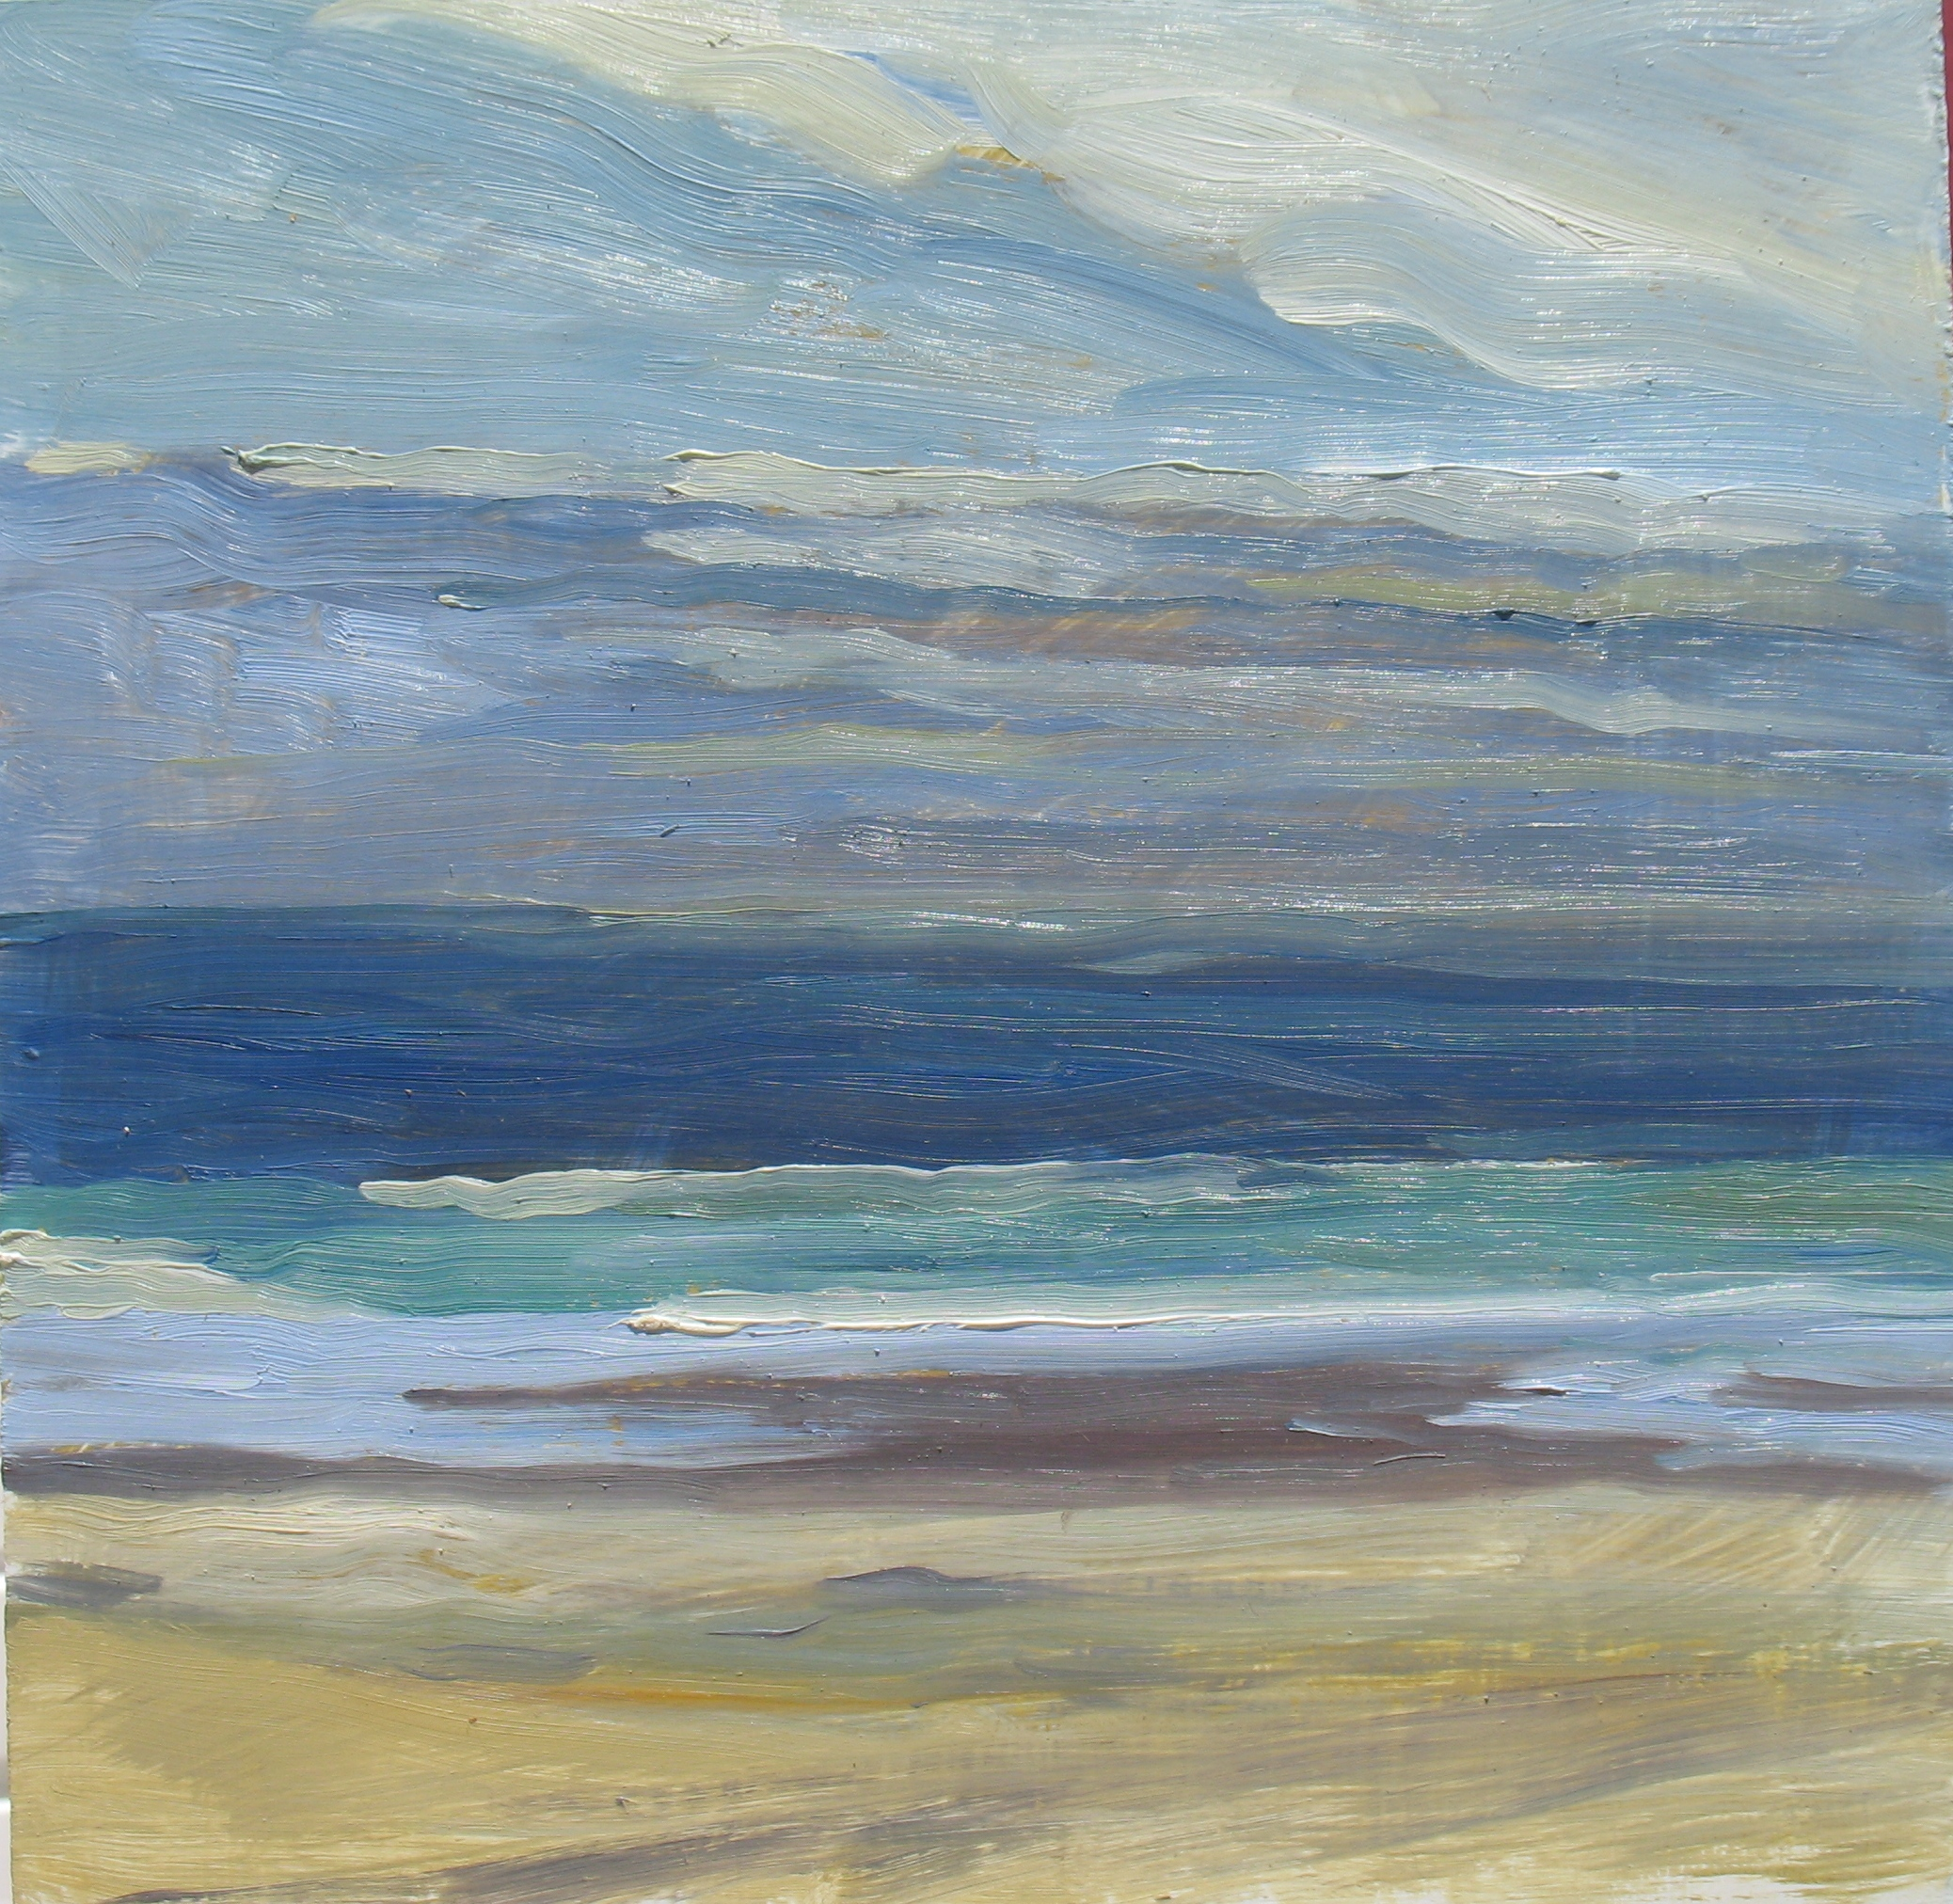 Waves and Light, 12 x 12 inches, oil on panel, 2011 - UNAVAILABLE